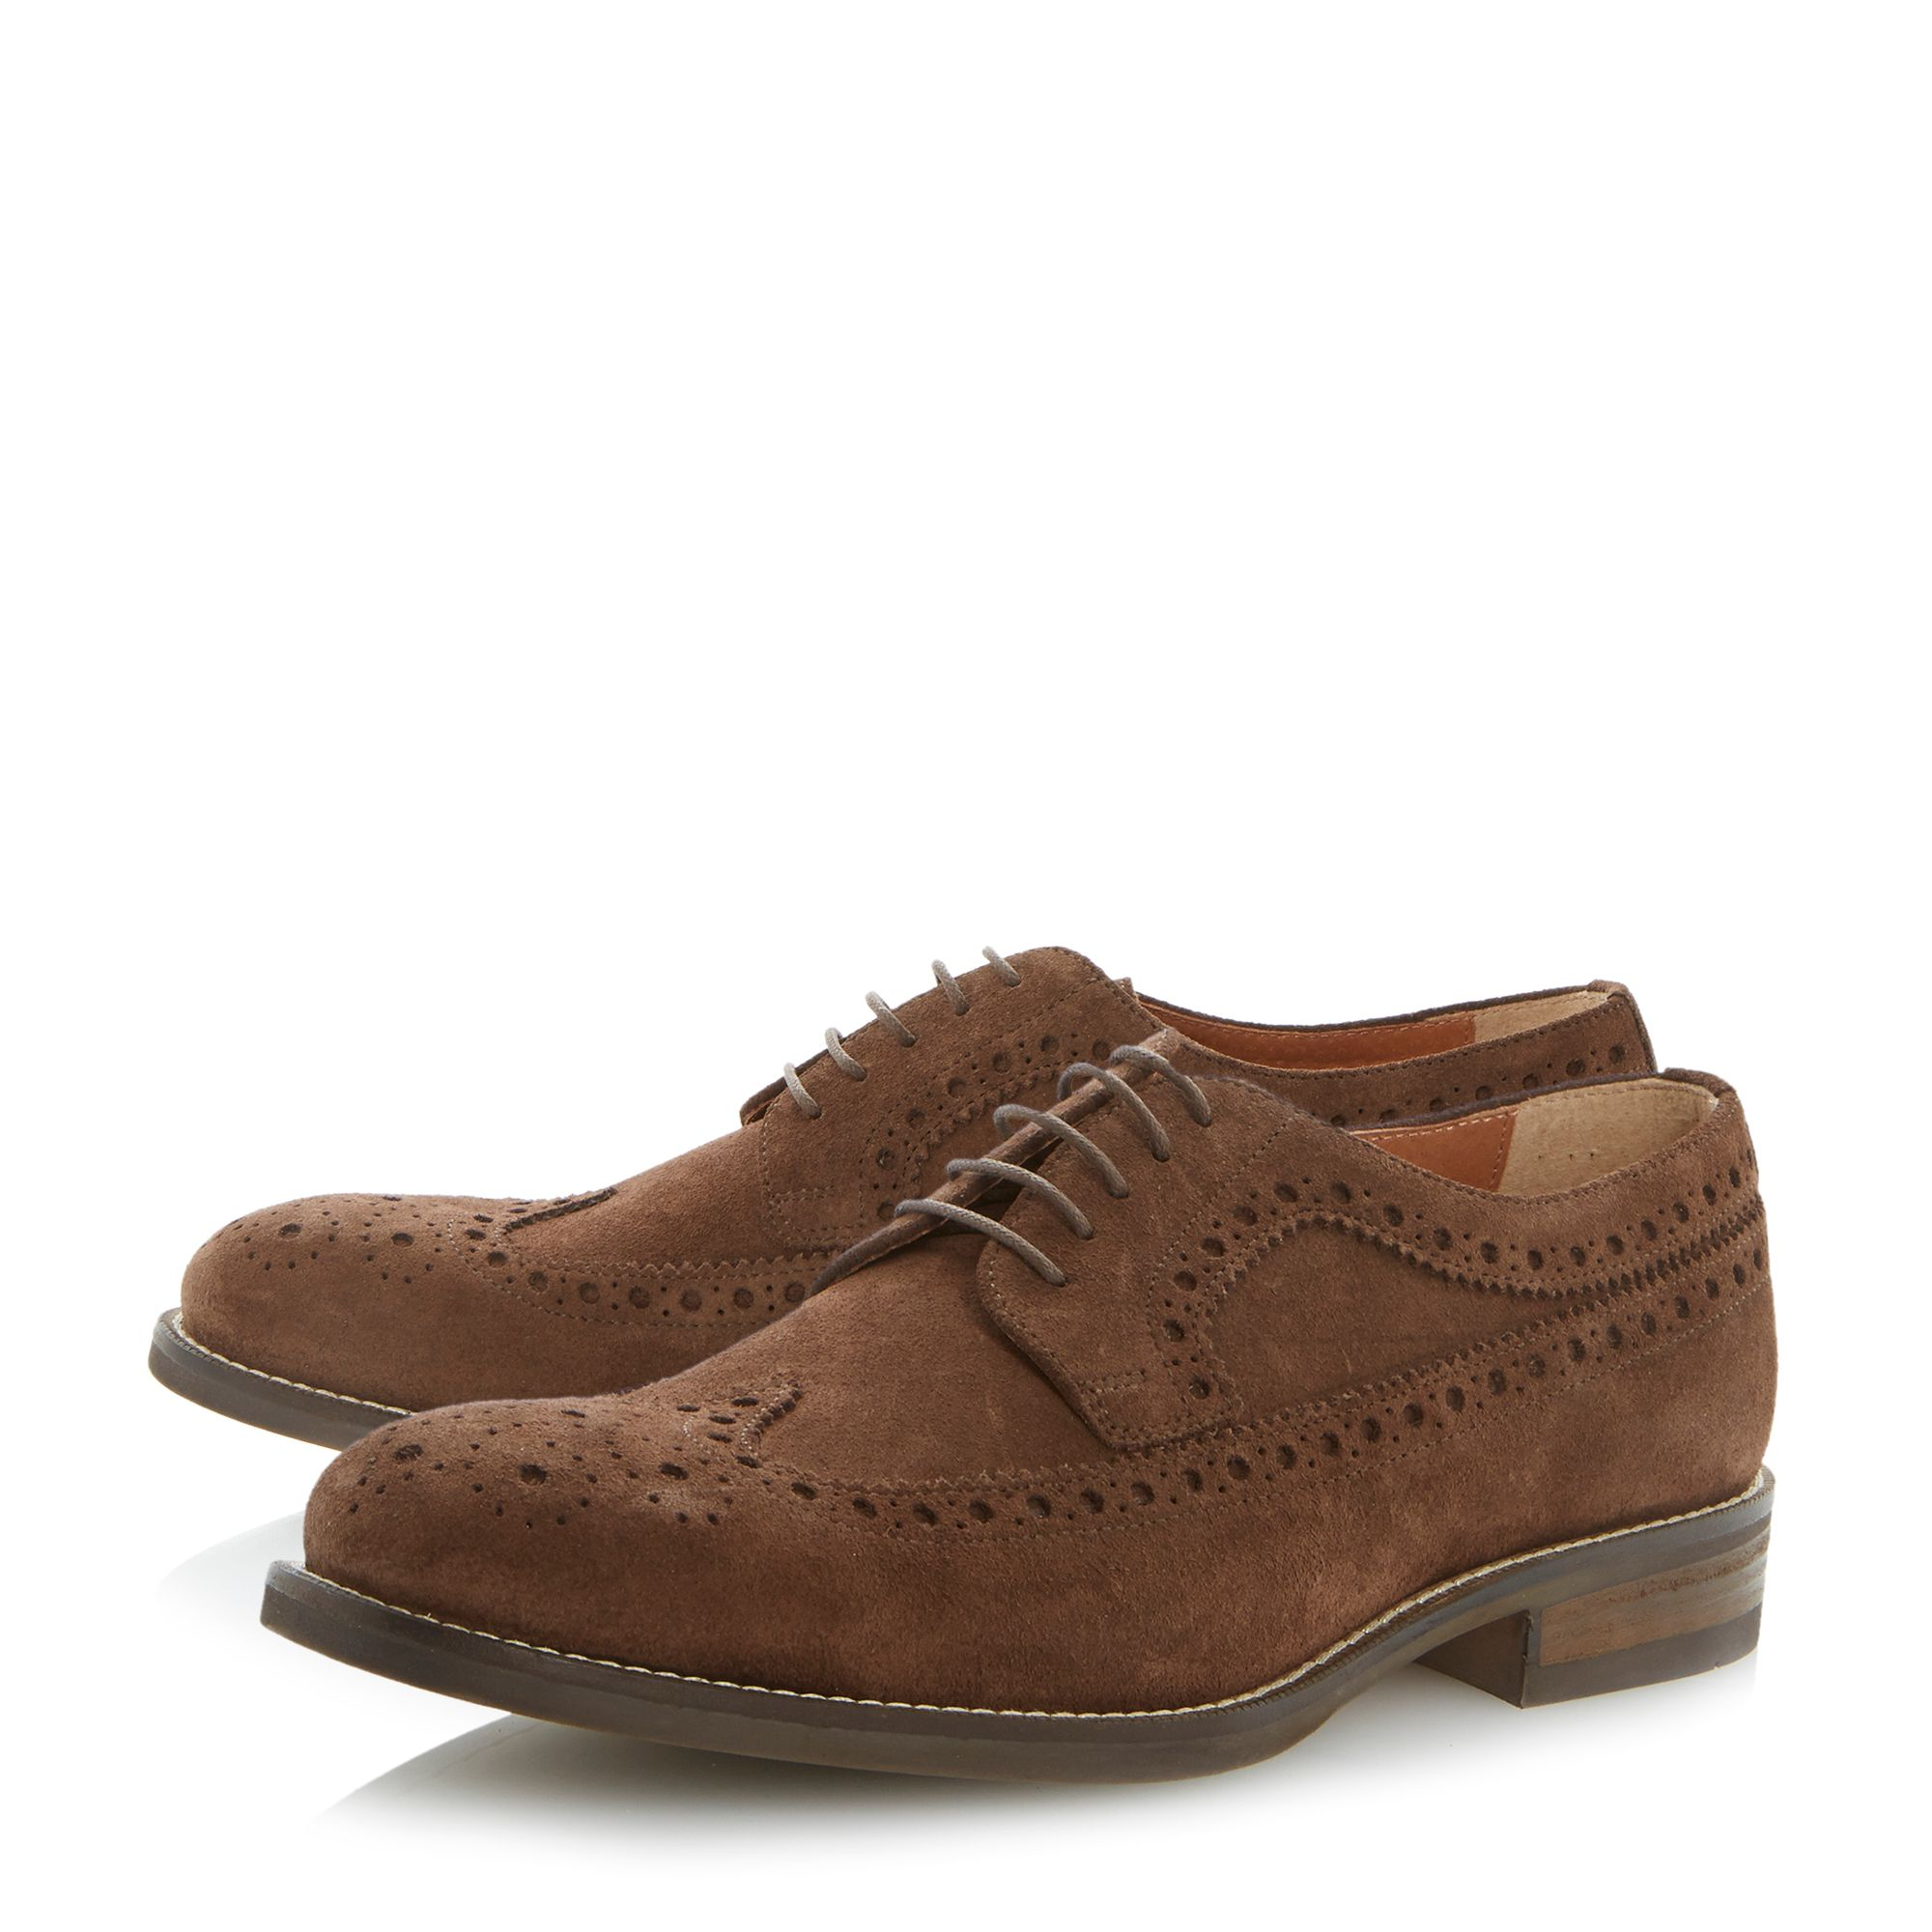 Brownhill casual lace up brogues